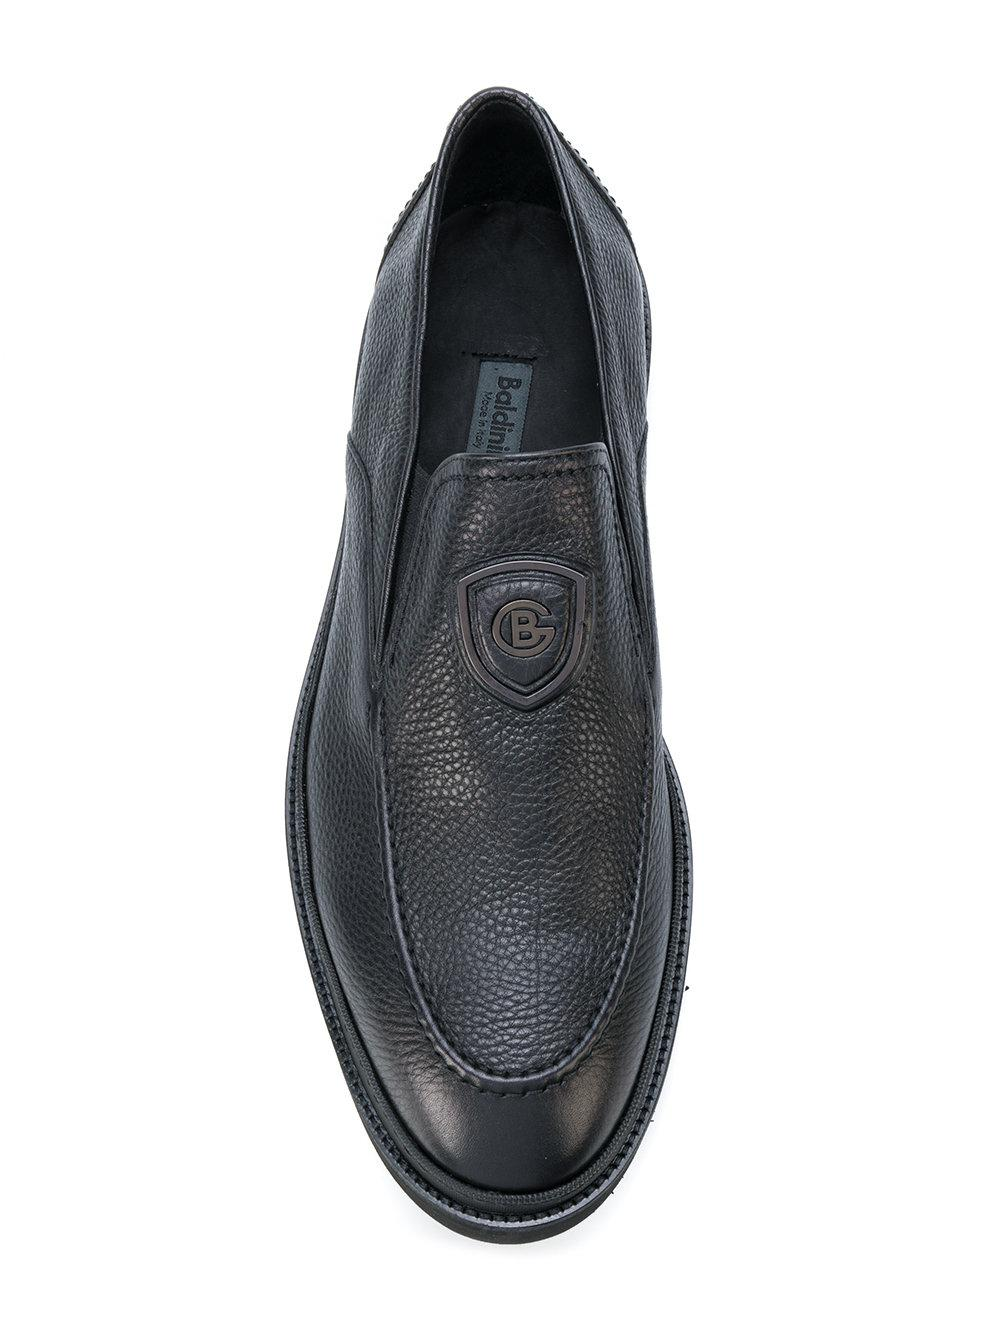 new styles d4f72 17dd6 baldinini-Black-Textured-Loafers.jpeg